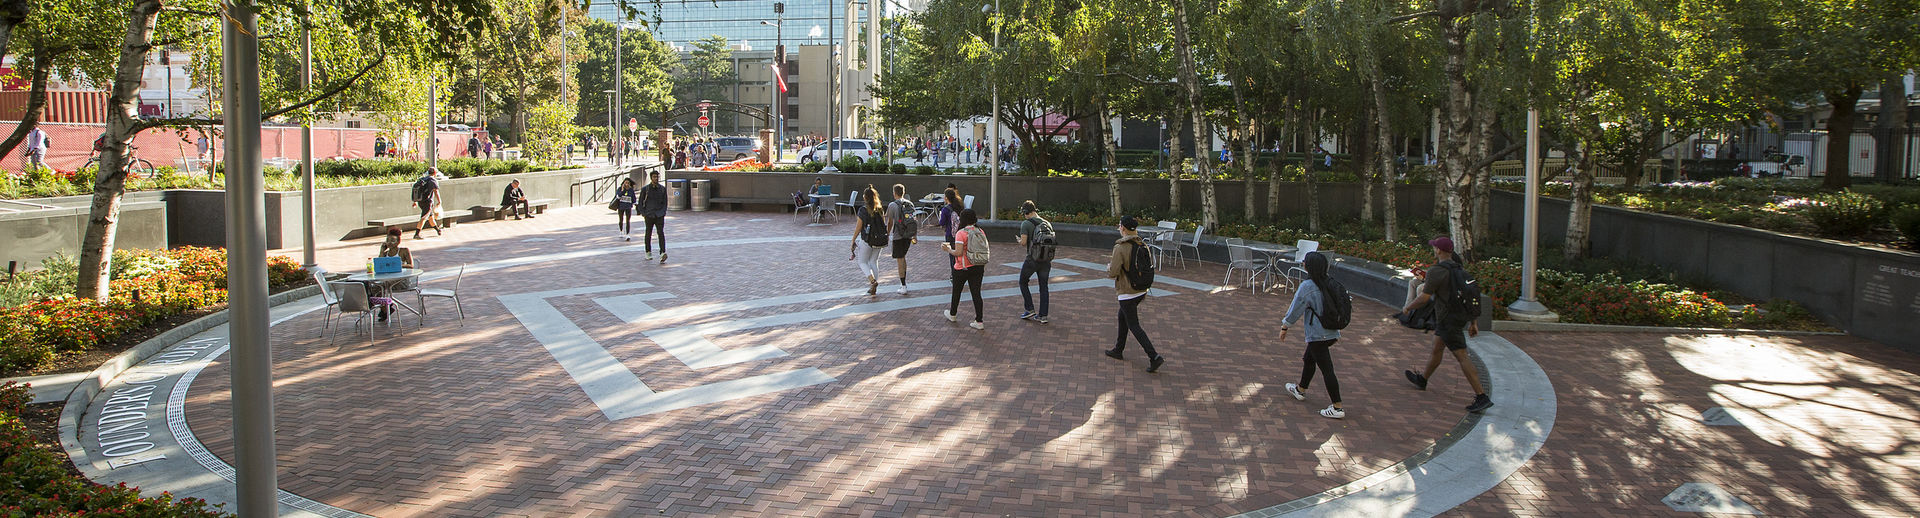 Students walking across campus on a bright sunny day